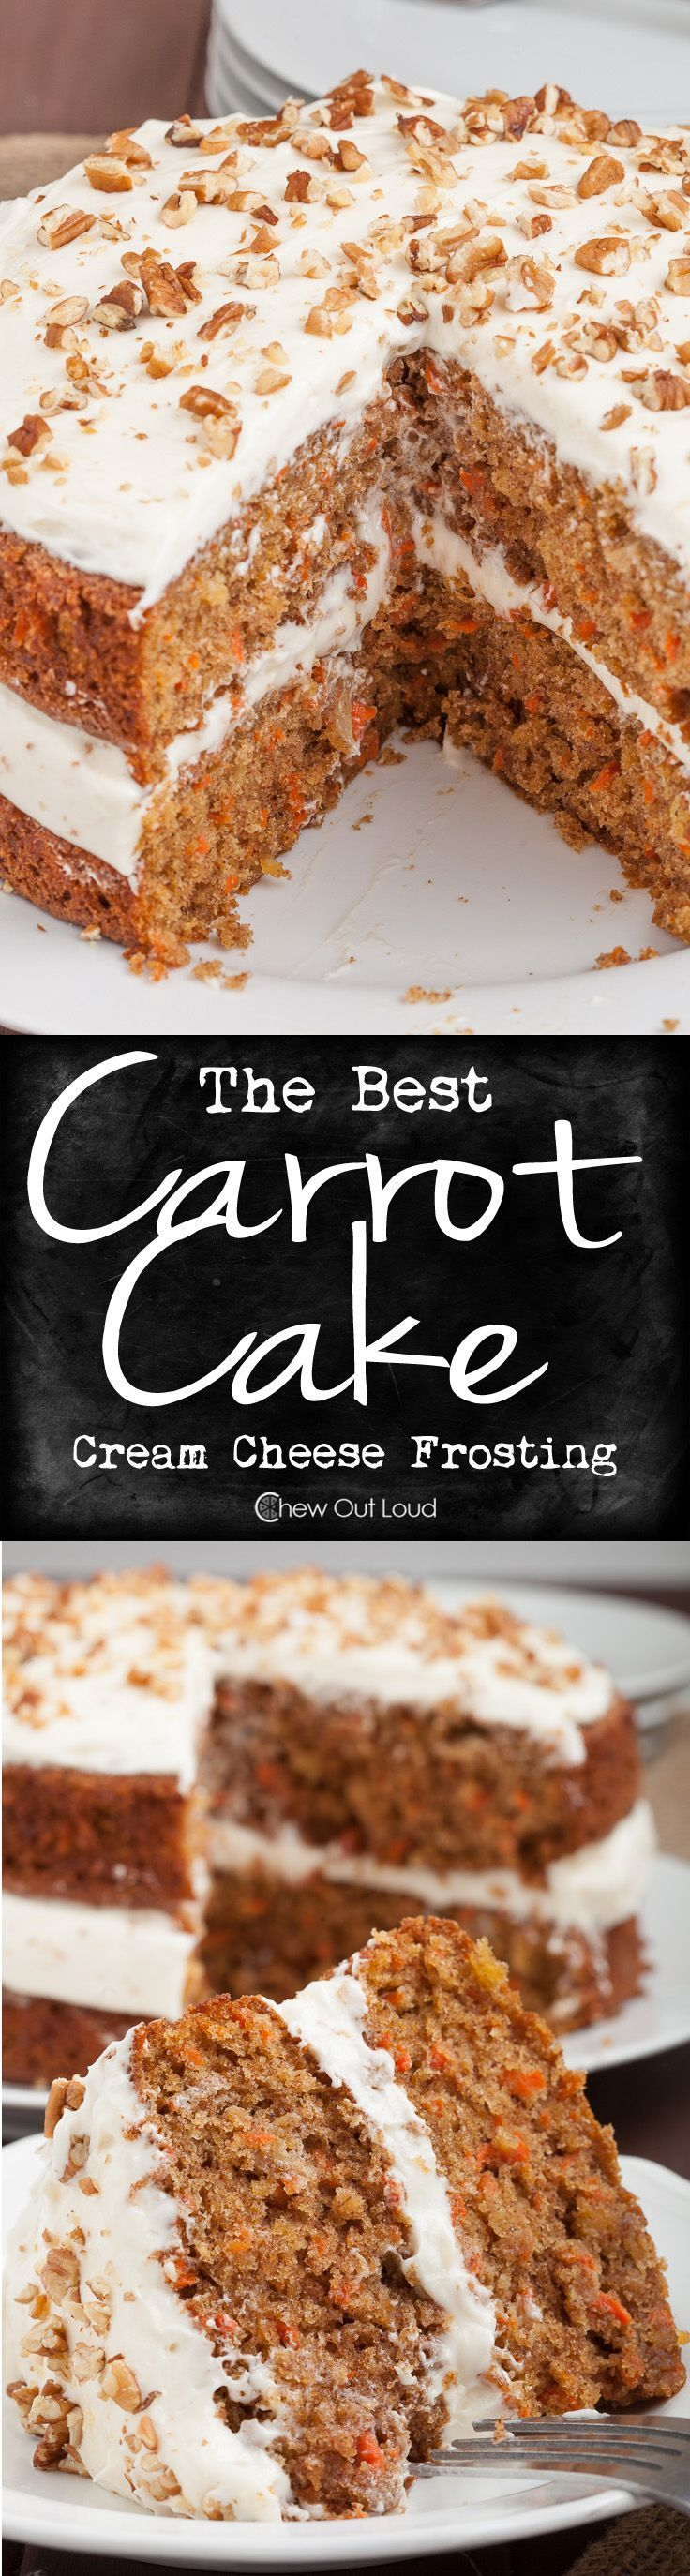 Truly the yummiest carrot cake we've ever devoured. Perfect for spring, holidays, birthdays, or weekends. Super moist cake with standout frosting. #dessert #recipe #carrotcake(Baking Bread With Kids)